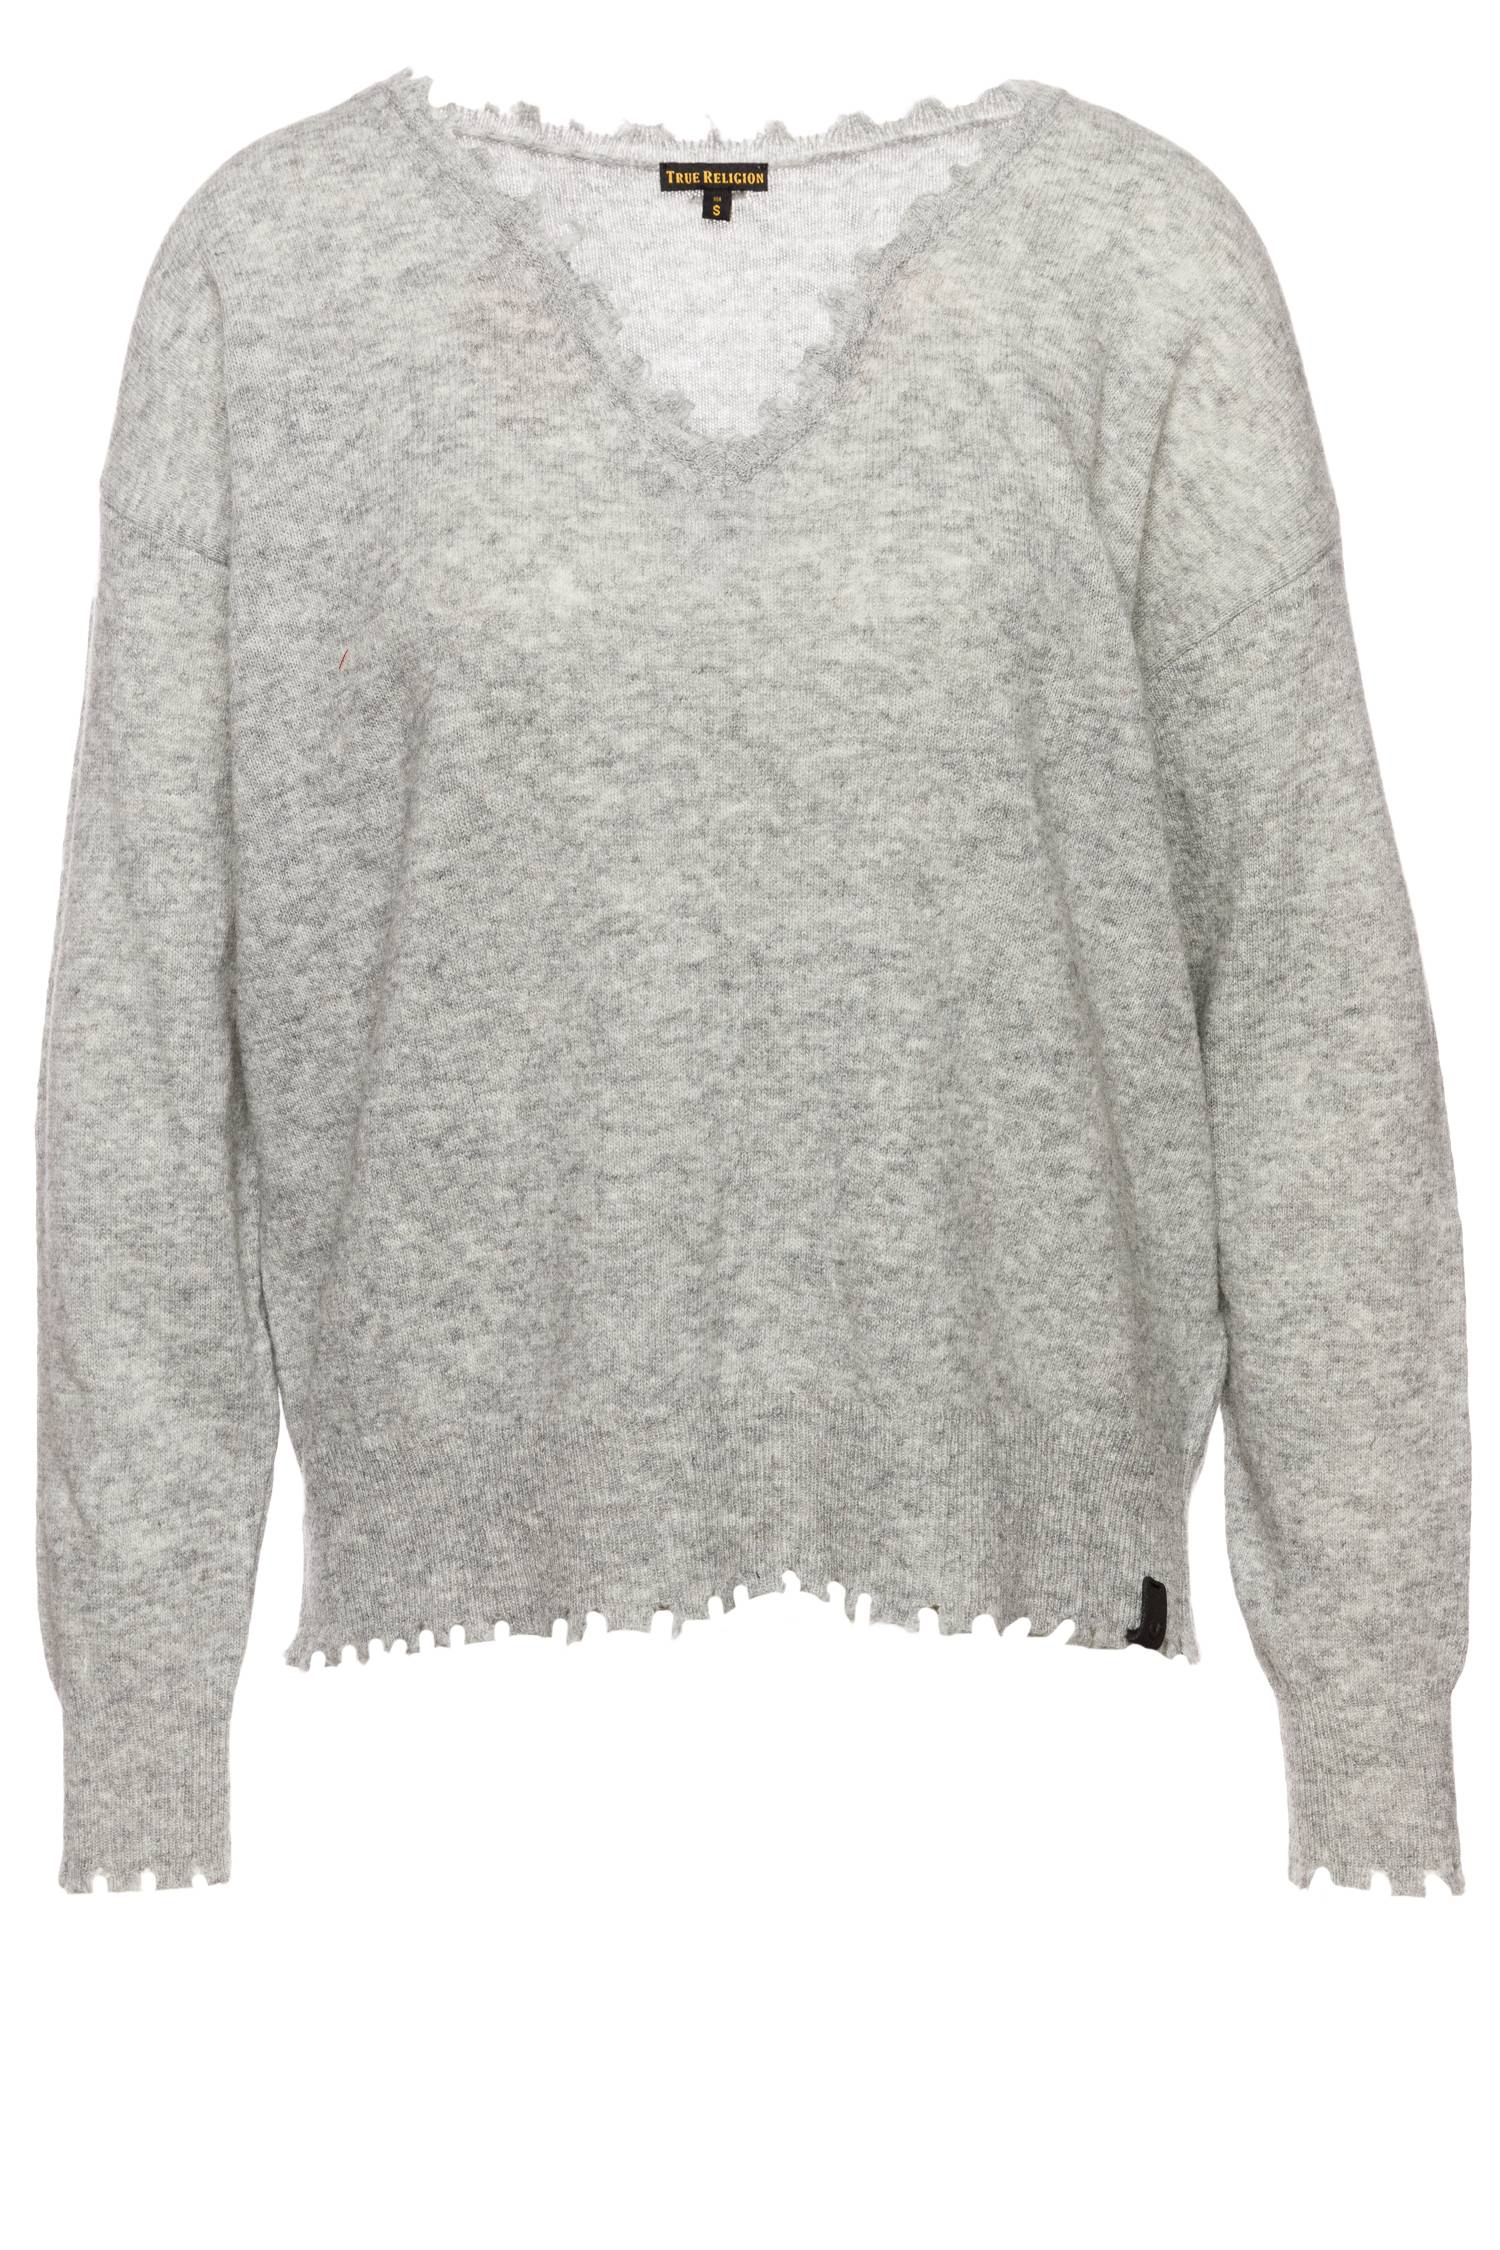 True Religion Damen Pullover in Grau | Stylight